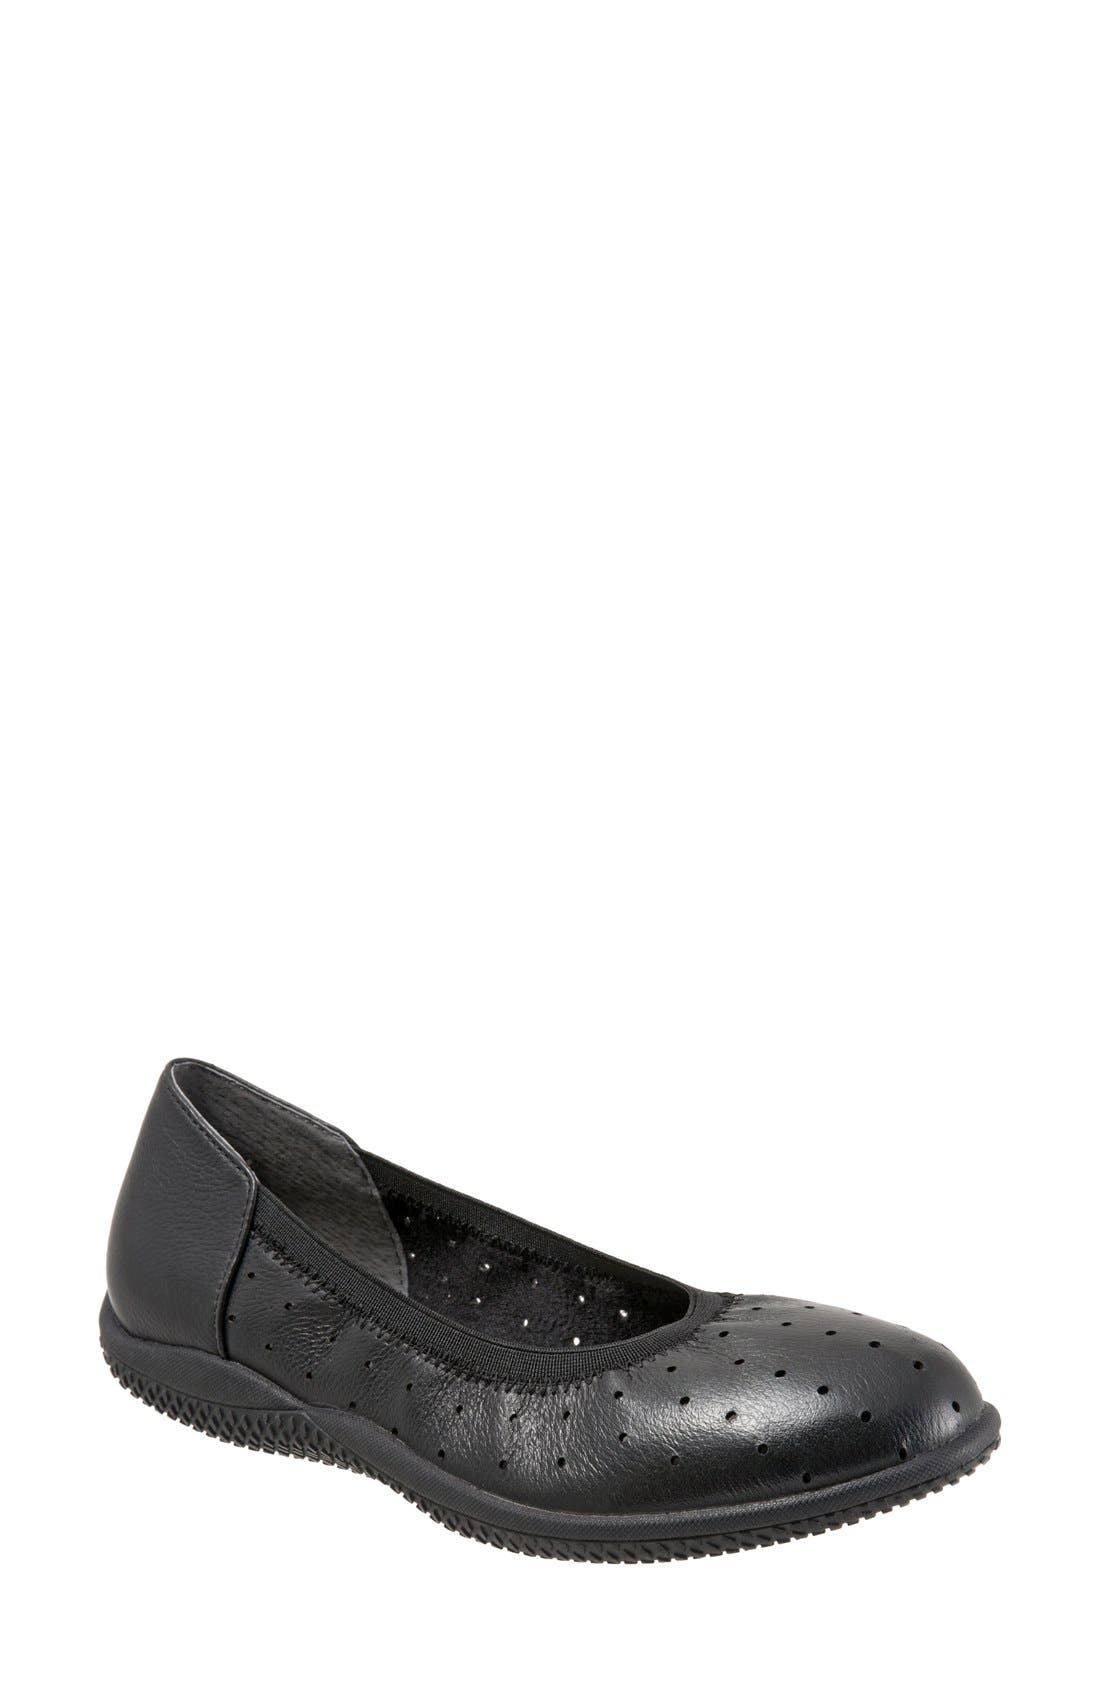 'Hampshire' Dot Perforated Ballet Flat,                         Main,                         color, BLACK LEATHER